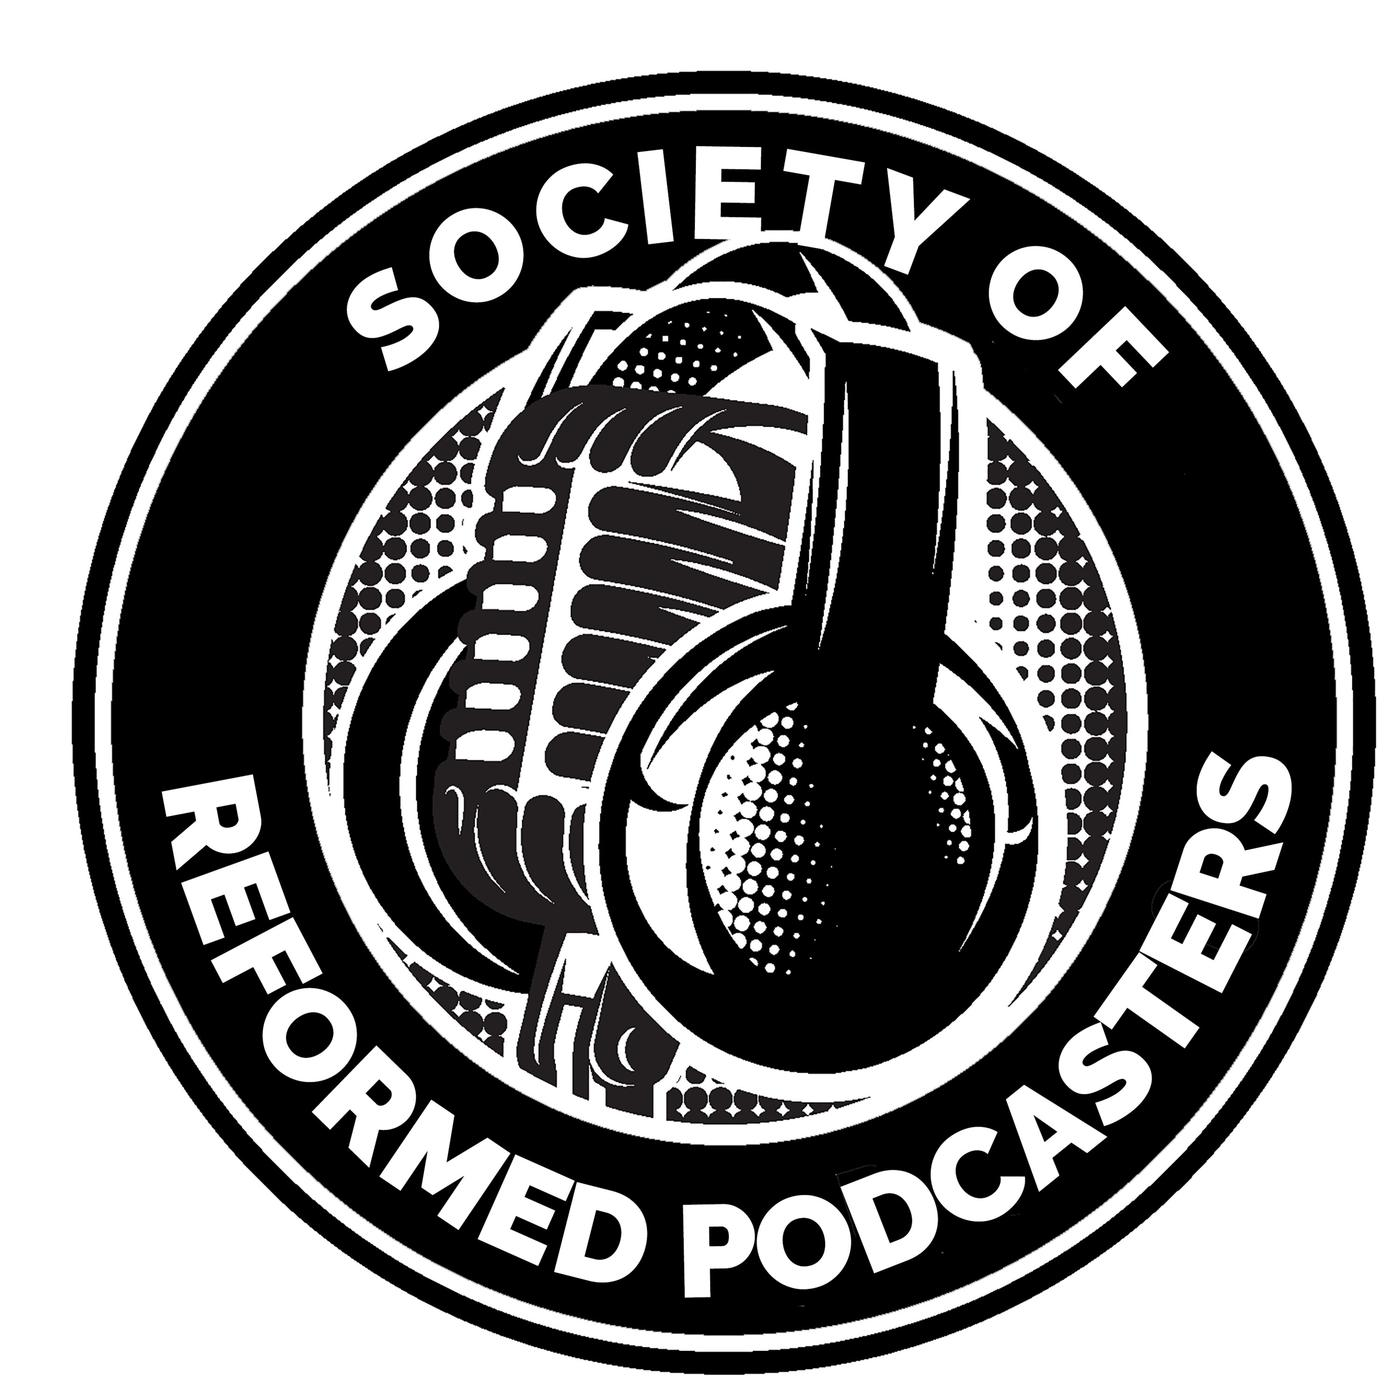 The Society of Reformed Podcasters - The Society of Reformed